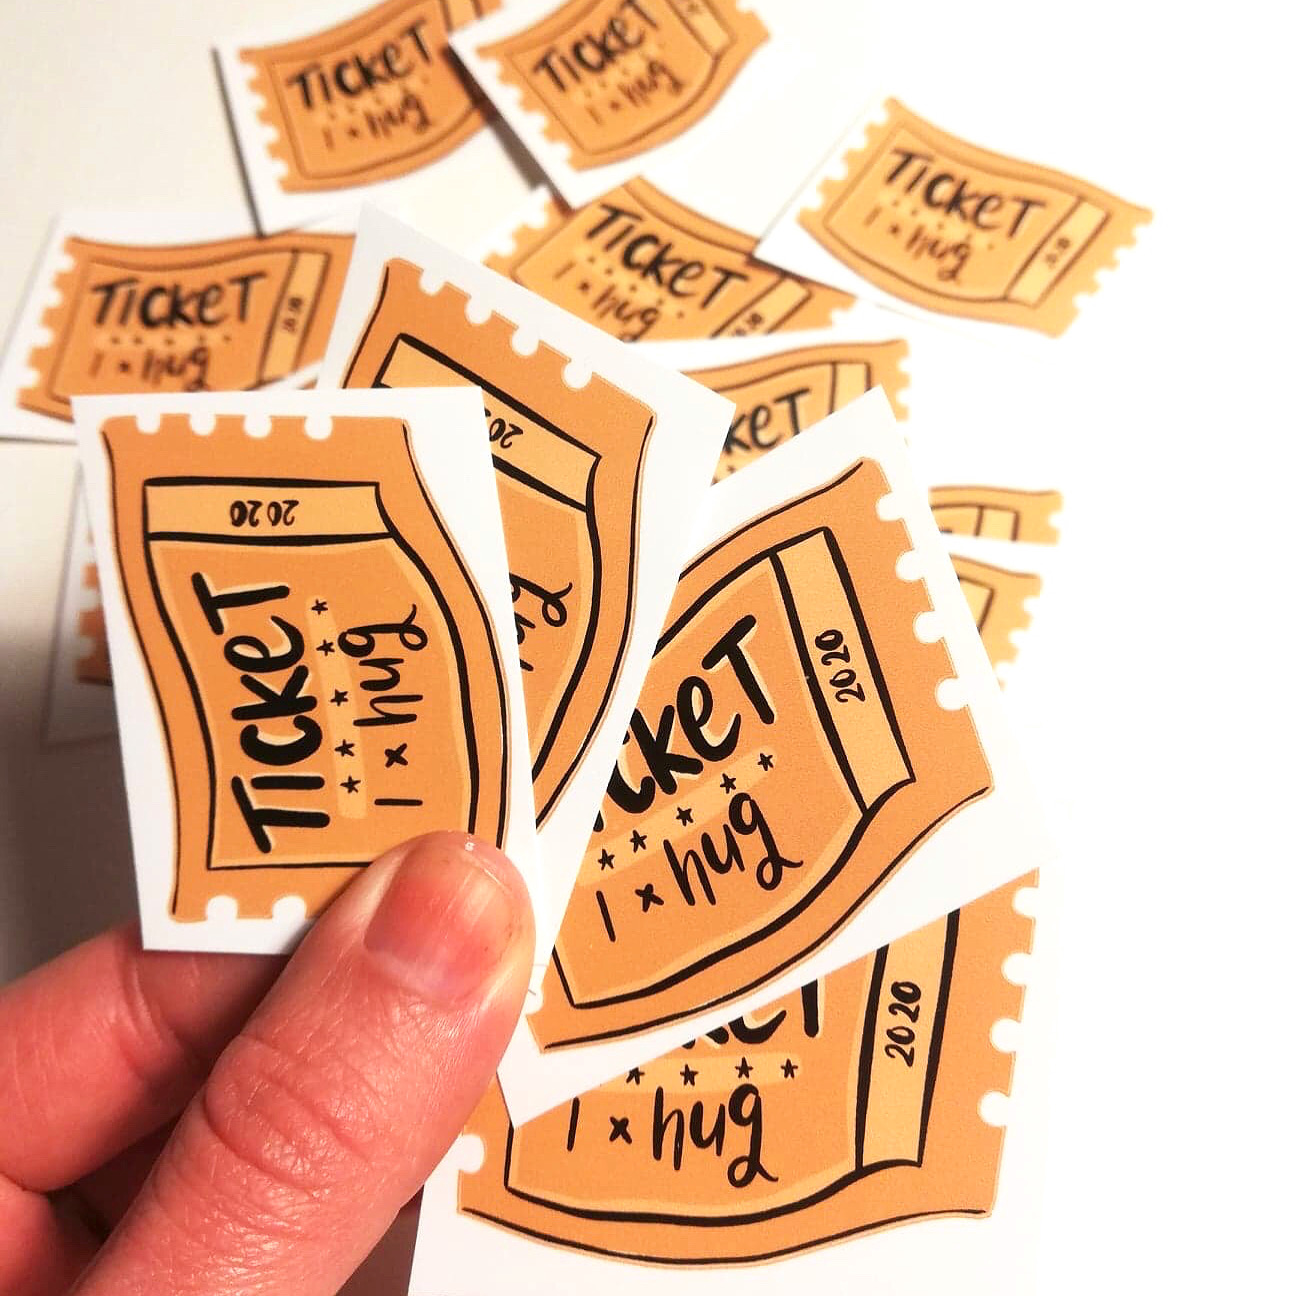 Hug ticket stickers by Lucy Joy Artist